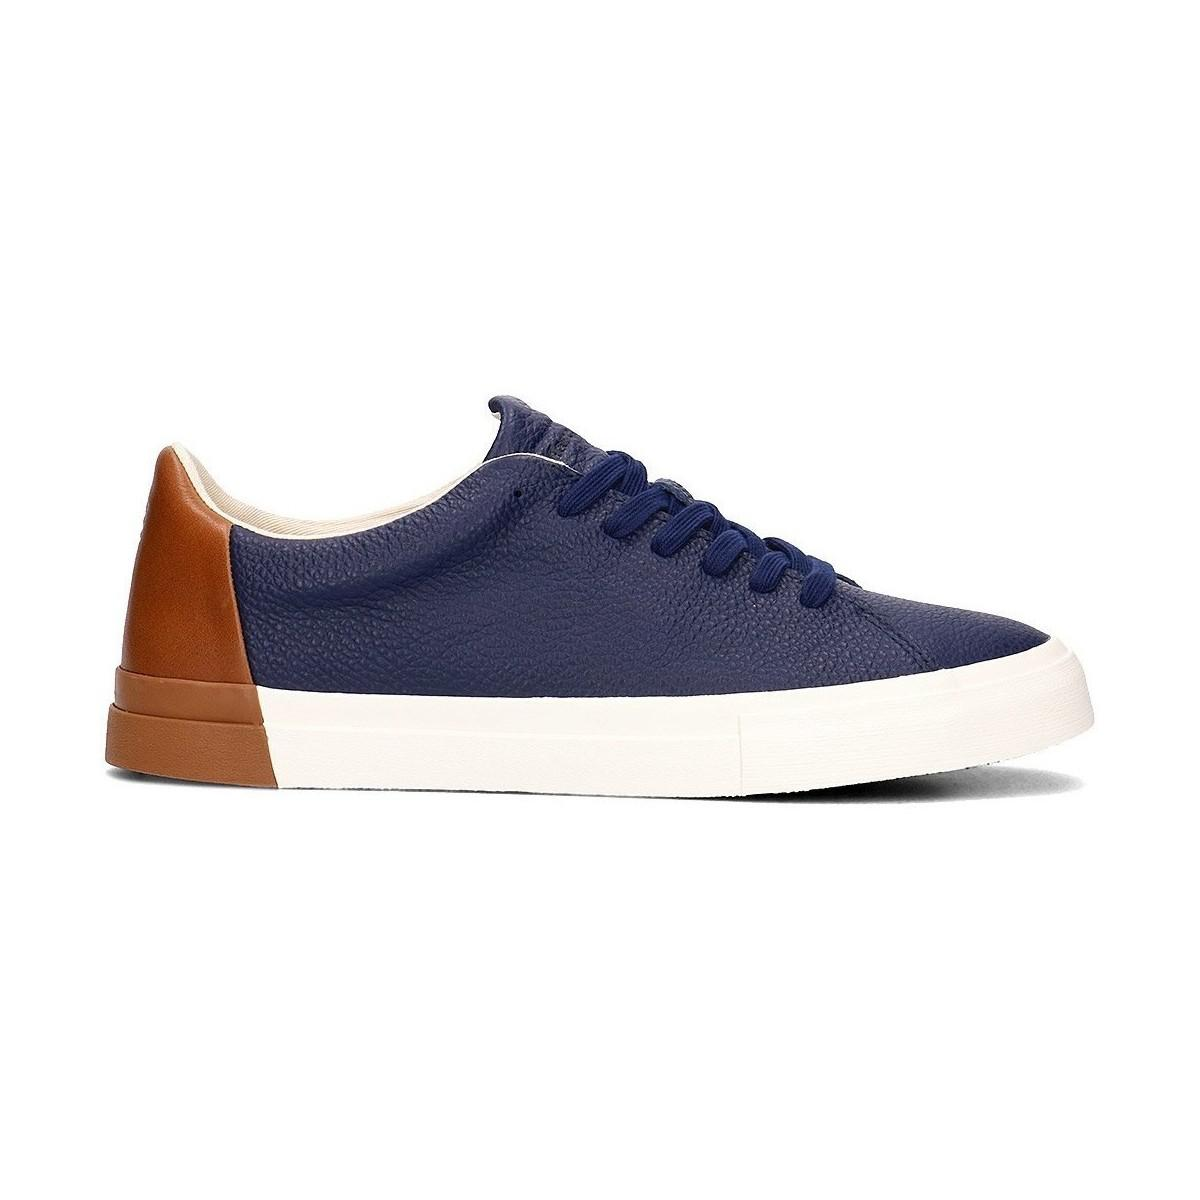 Marc O'polo 80223783502102890 Men's Shoes (trainers) In Multicolour in Blue for Men